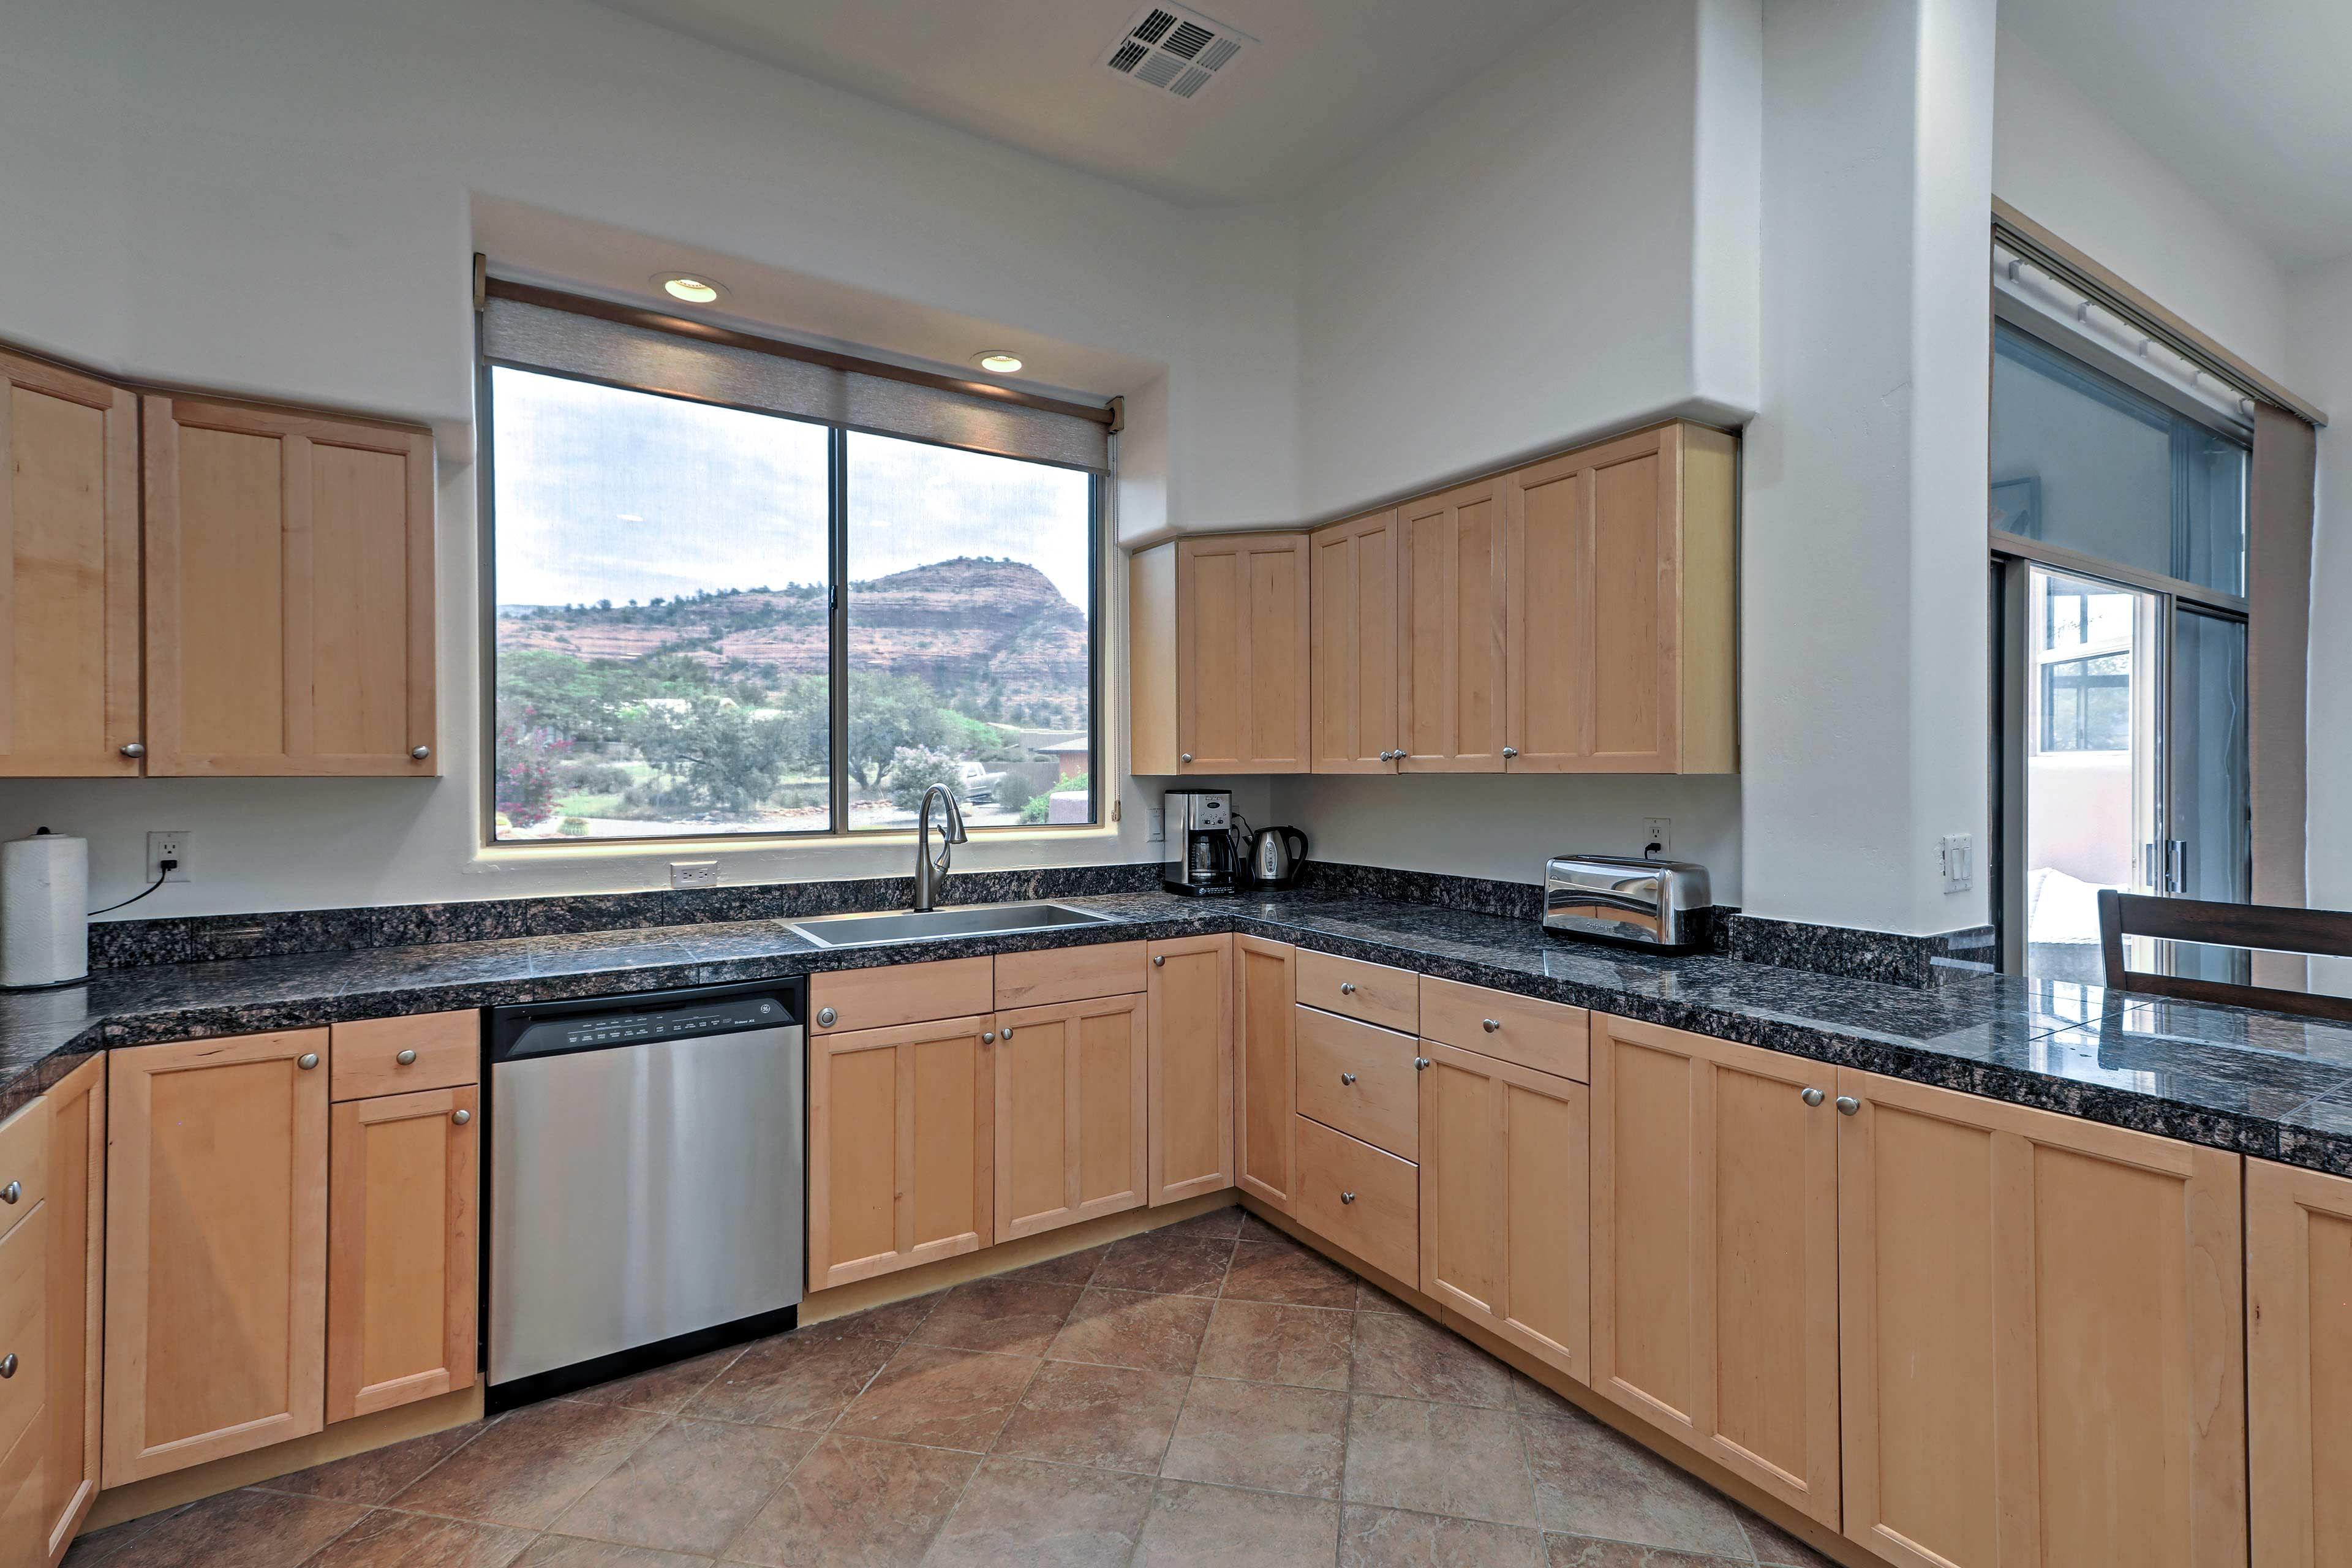 Large picture windows reveal red rock formations in the kitchen.